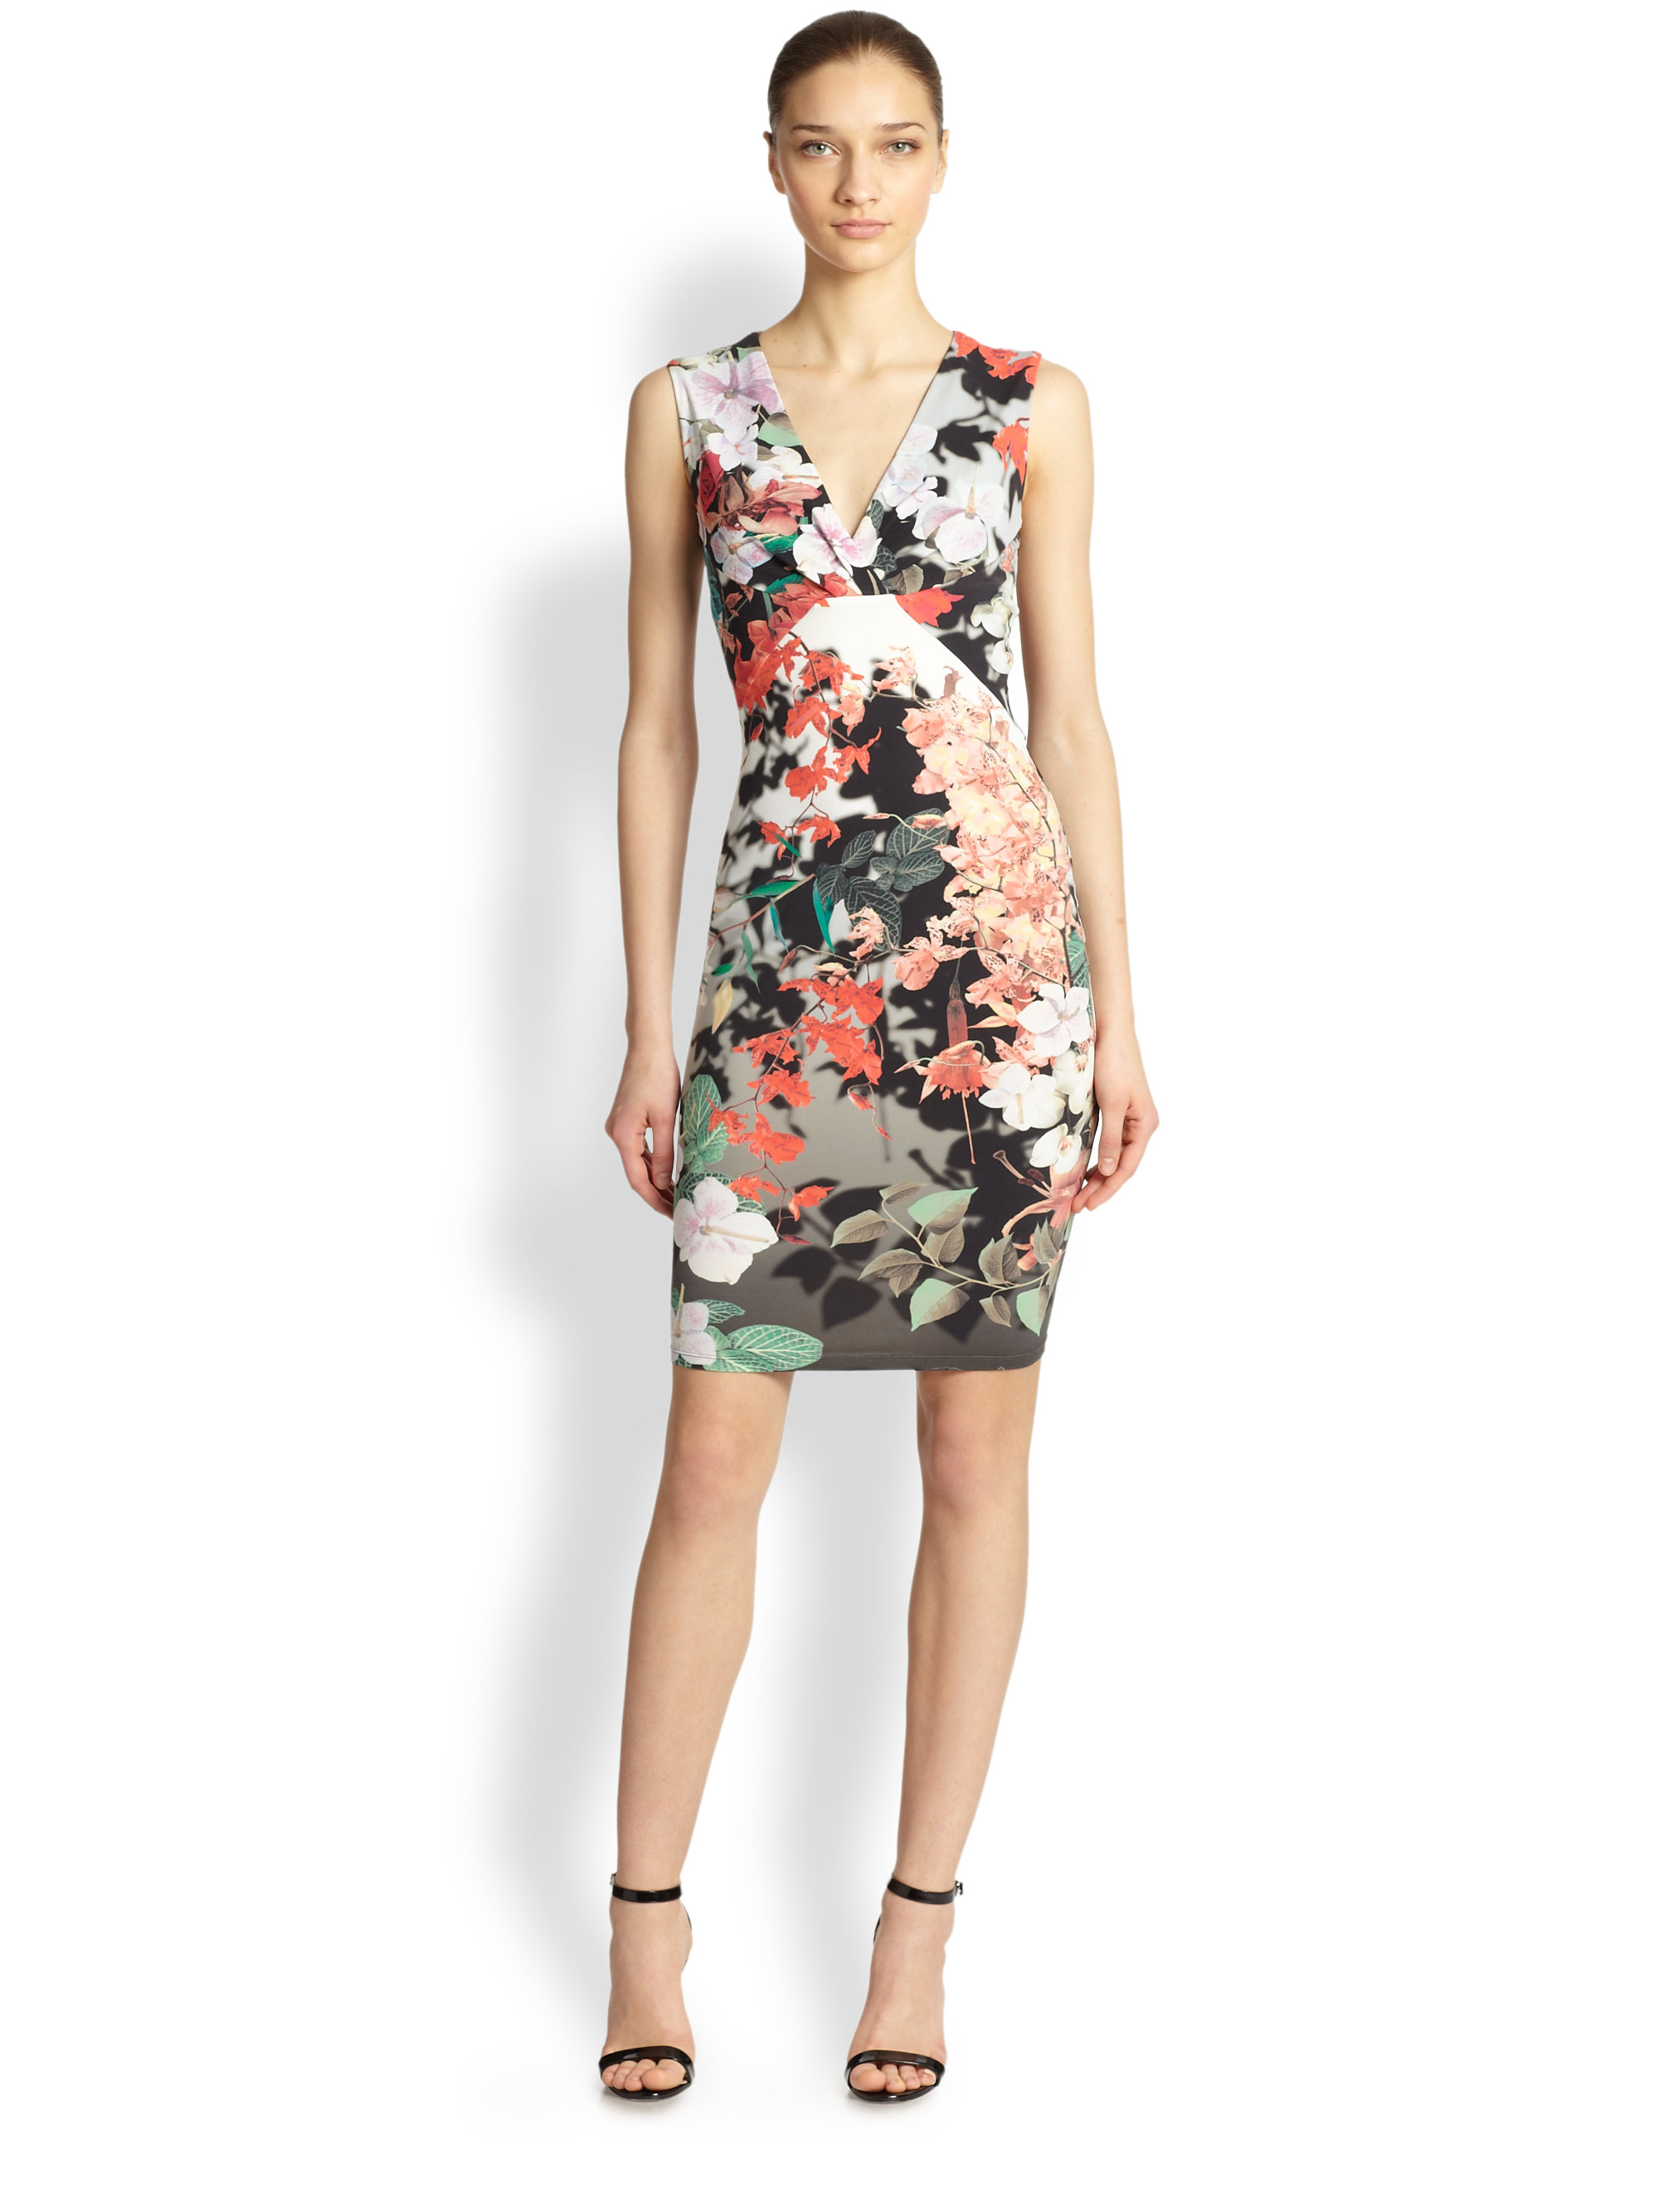 Sleeveless knitted dress Roberto Cavalli Sale Lowest Price Cheap Sale Low Shipping Authentic Sale Online Low Shipping Fee For Sale qcURfT7Om